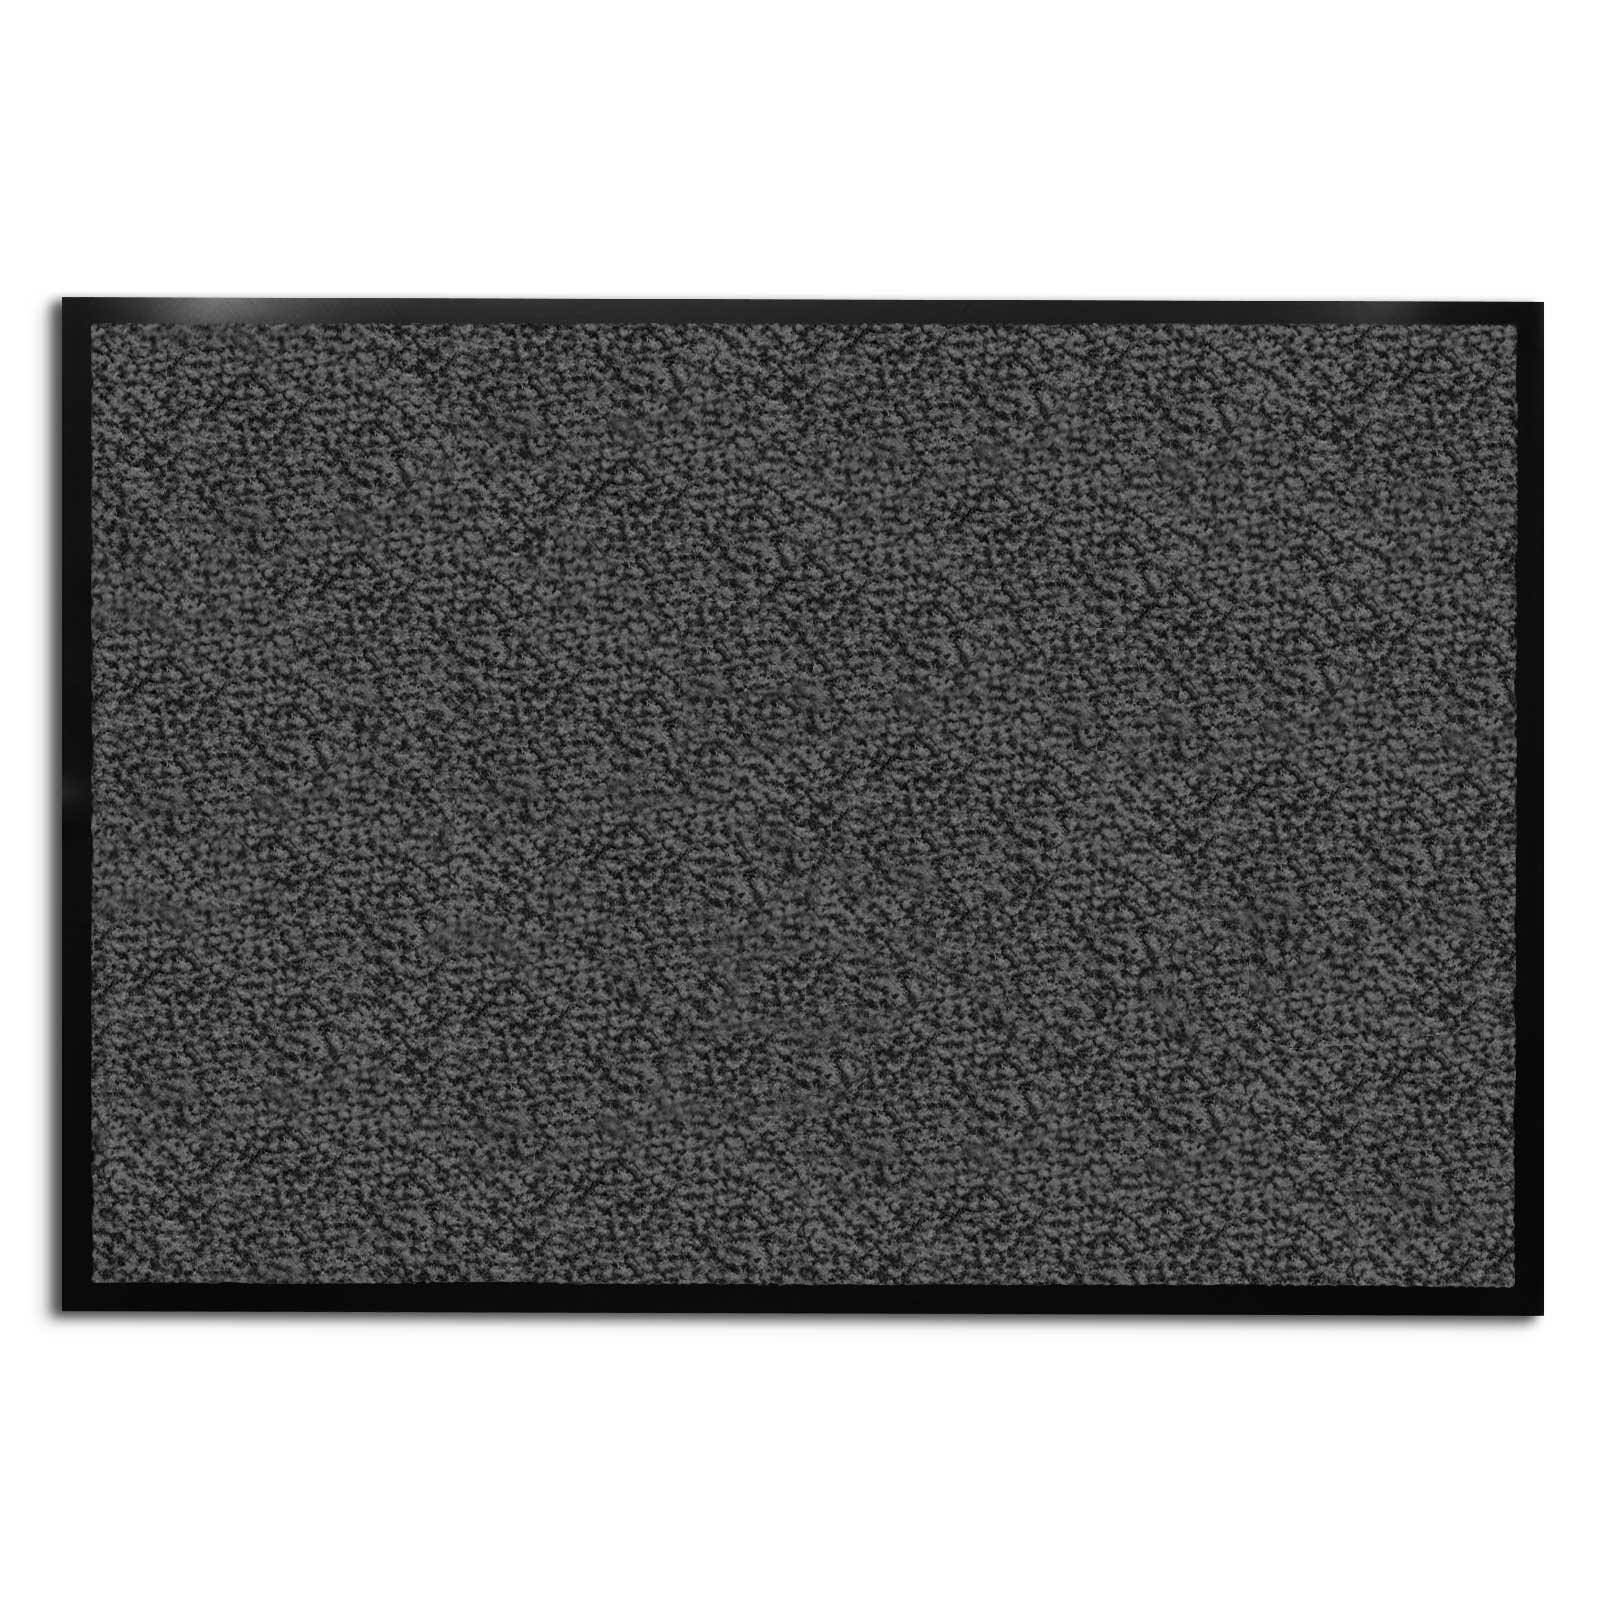 casa pura Carpet Entrance Mat, Gray (Mottled) 36'' x 236'' | Absorbent, Non-slip, Indoor/Outdoor (Multiple Sizes)